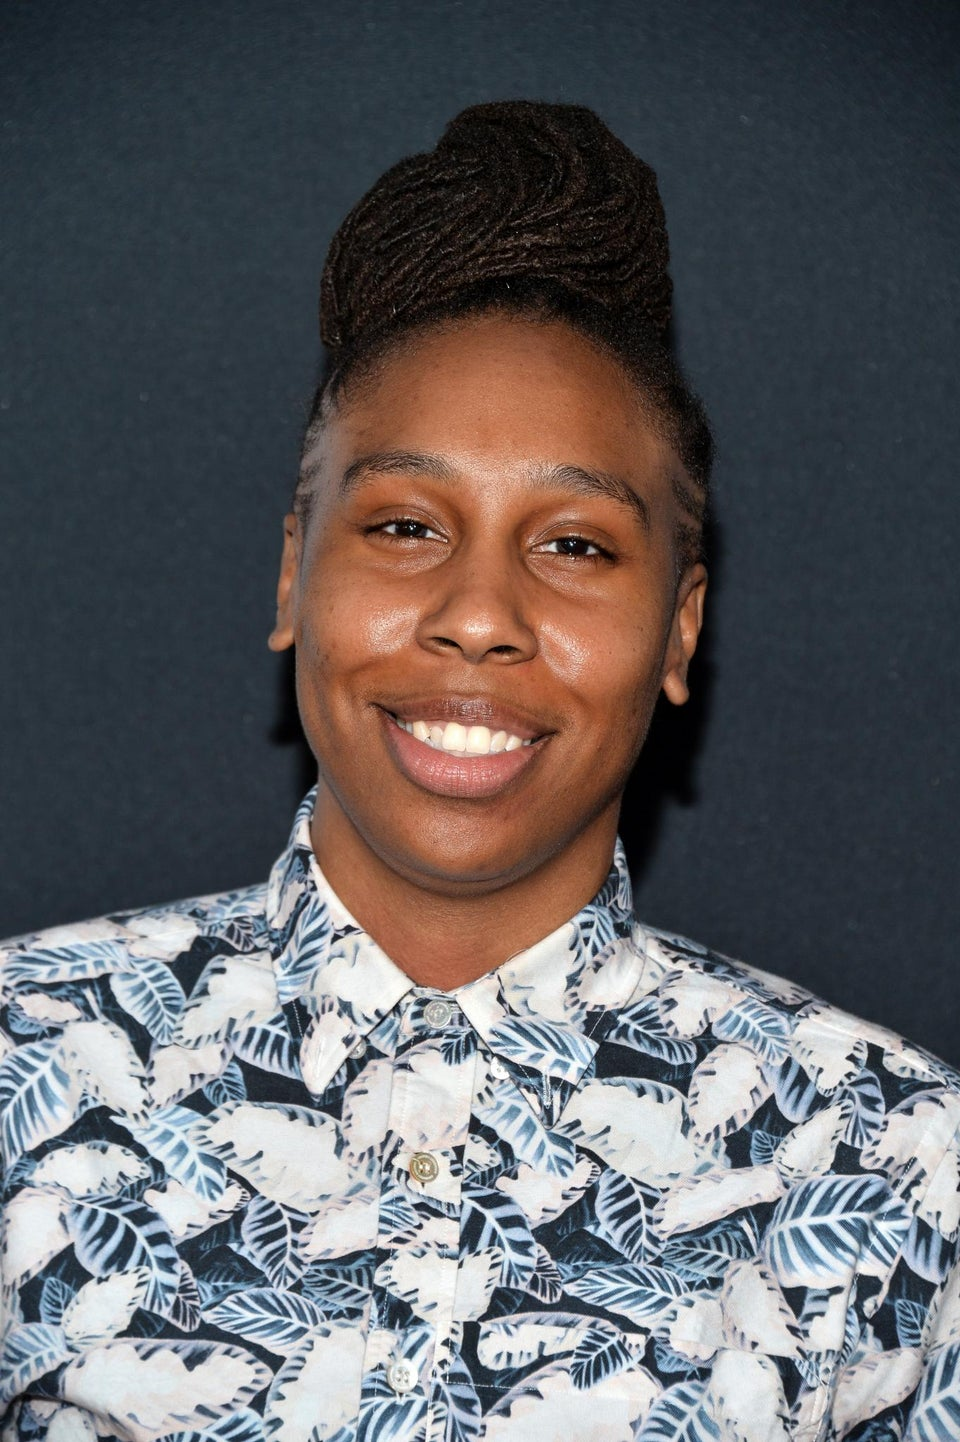 Major: Lena Waithe Is The First Black Woman Nominated For A Comedy Writing Emmy